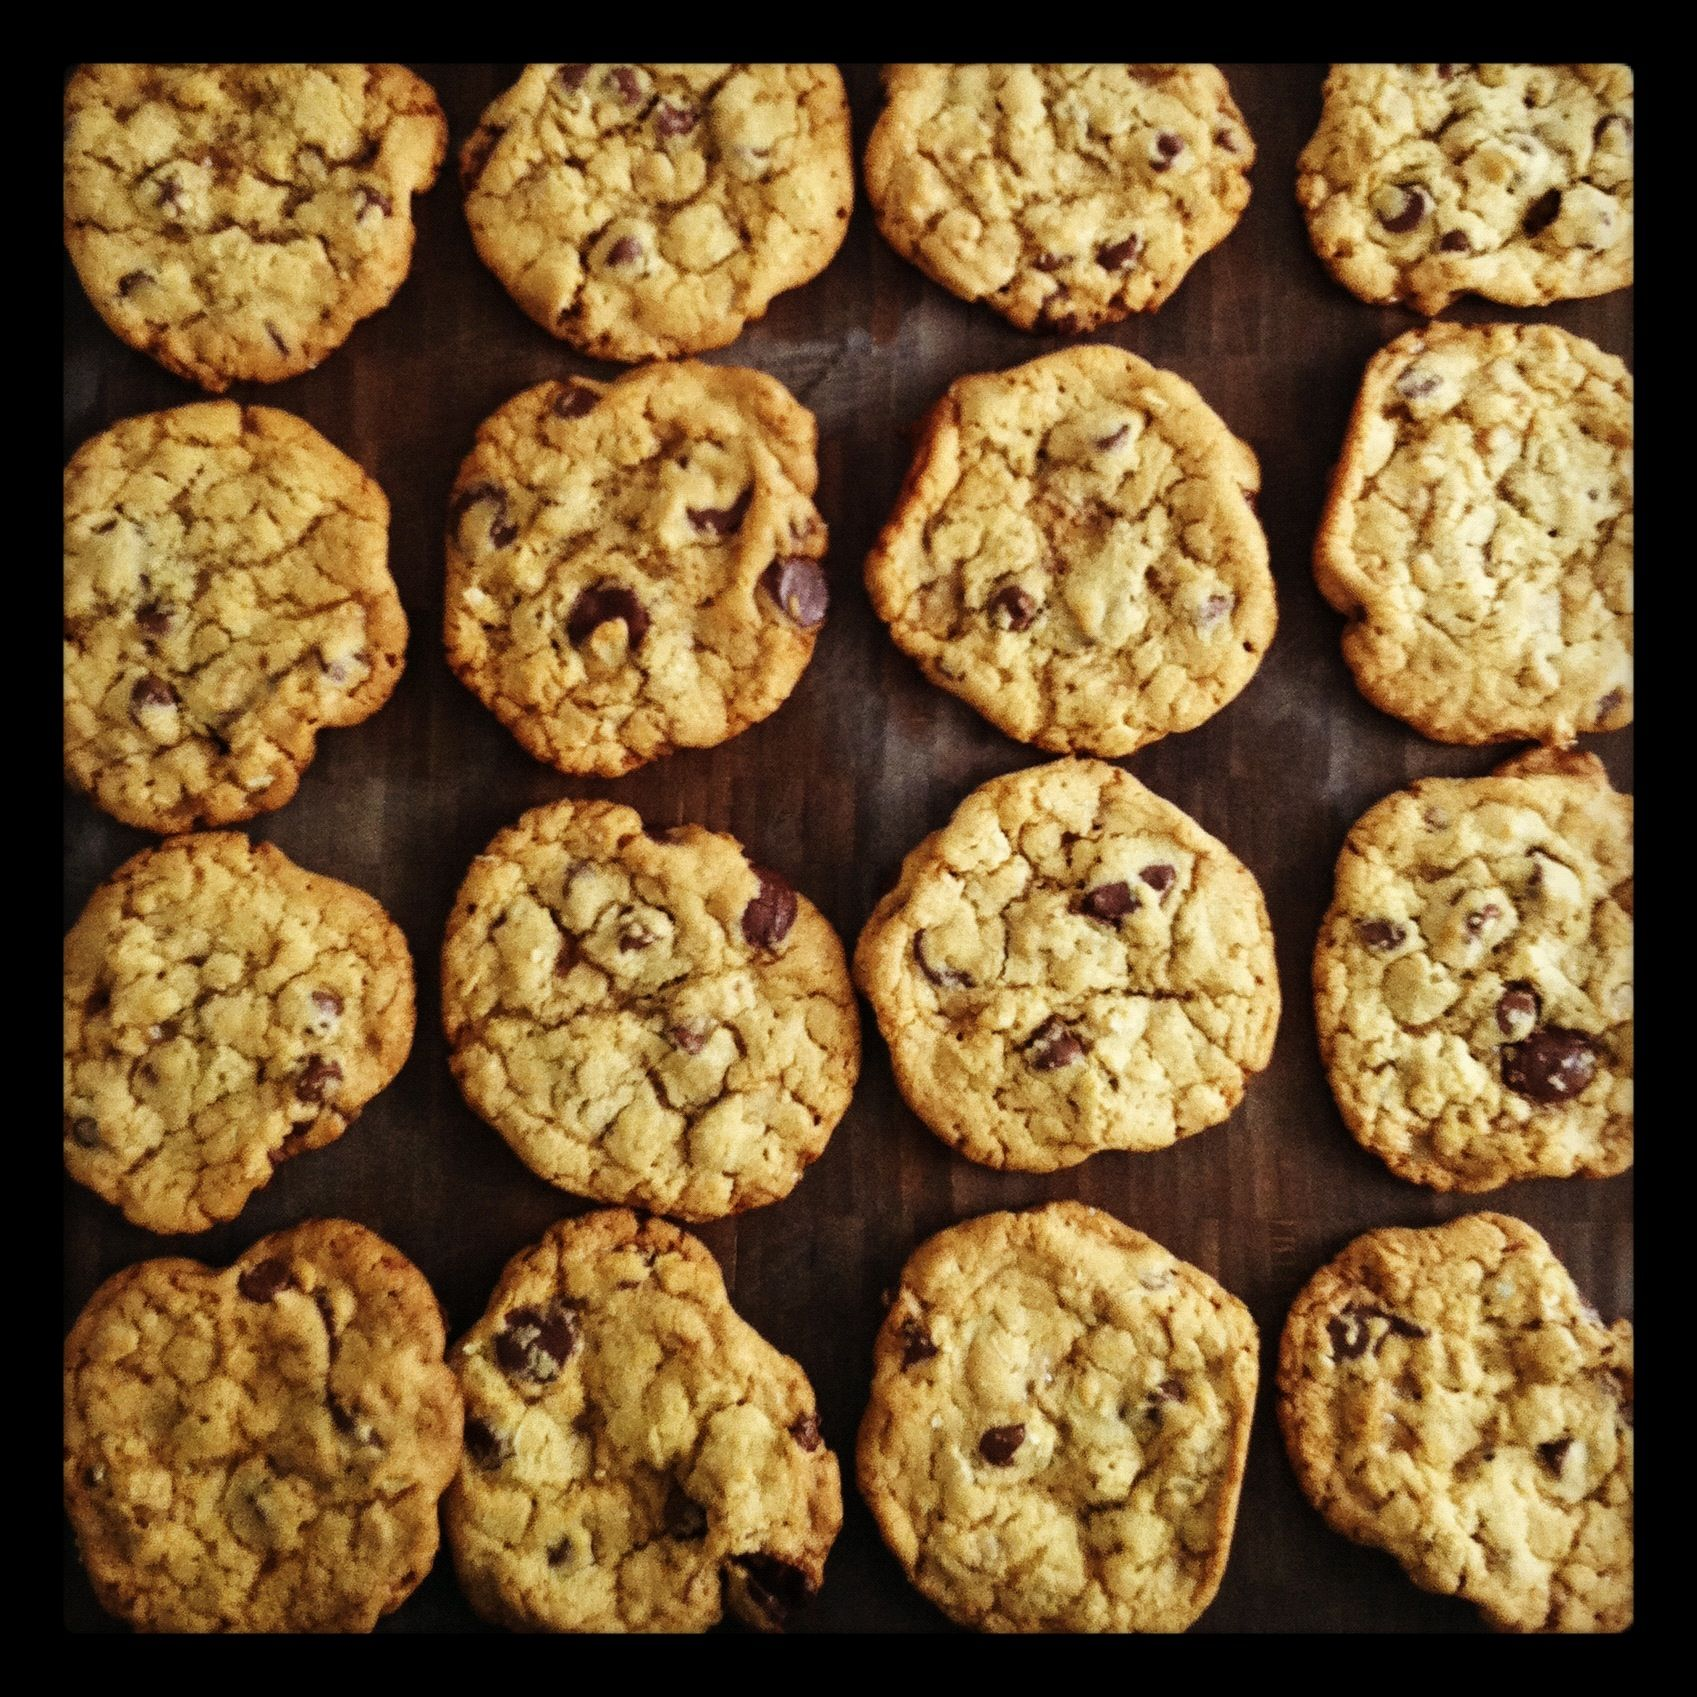 Giada laurentiis oatmeal cookie recipes